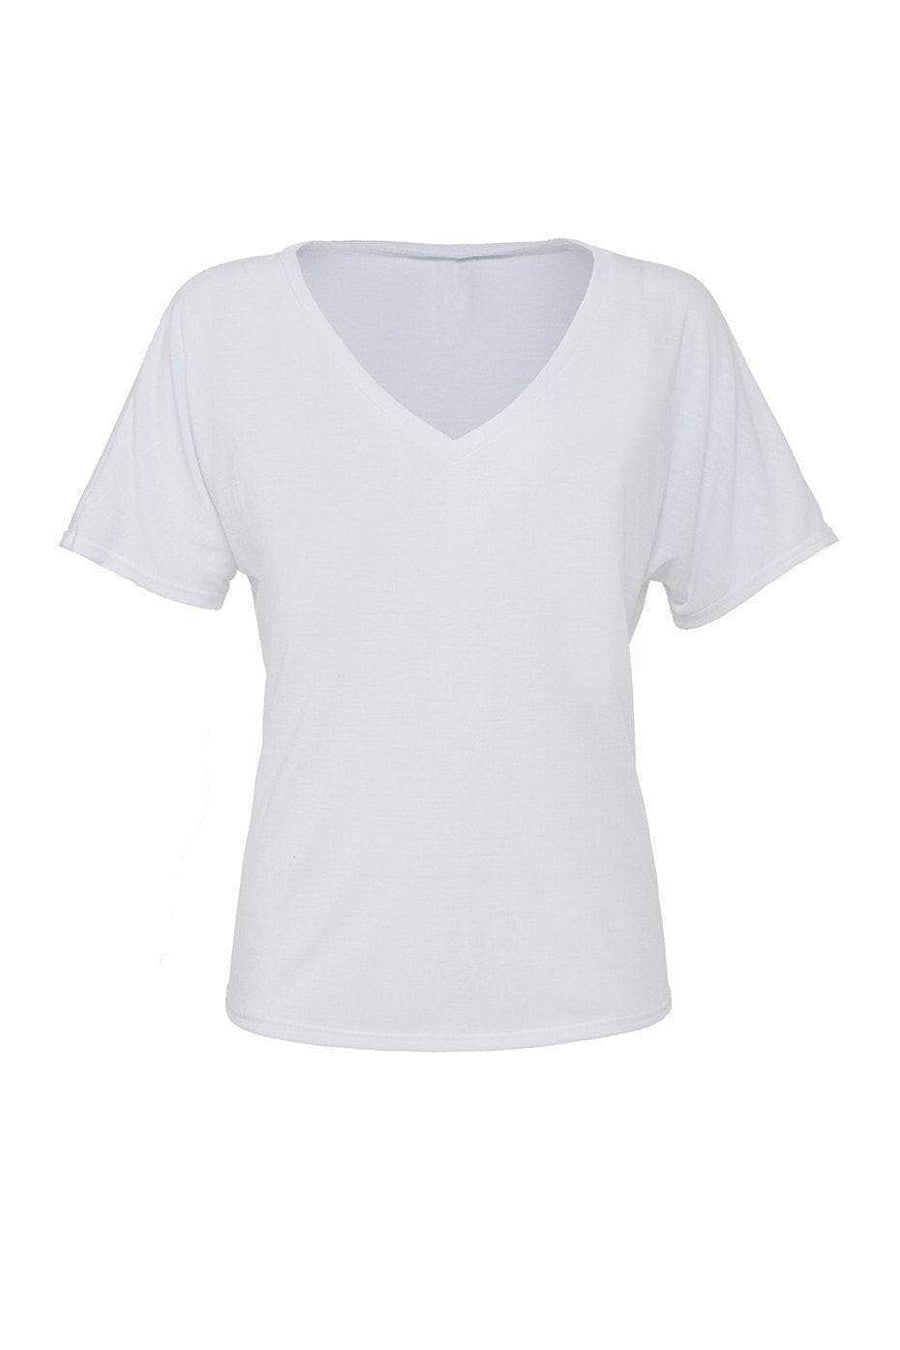 Greek Heart Est. Date Shirt - Bella Slouchy V-Neck Short Sleeve